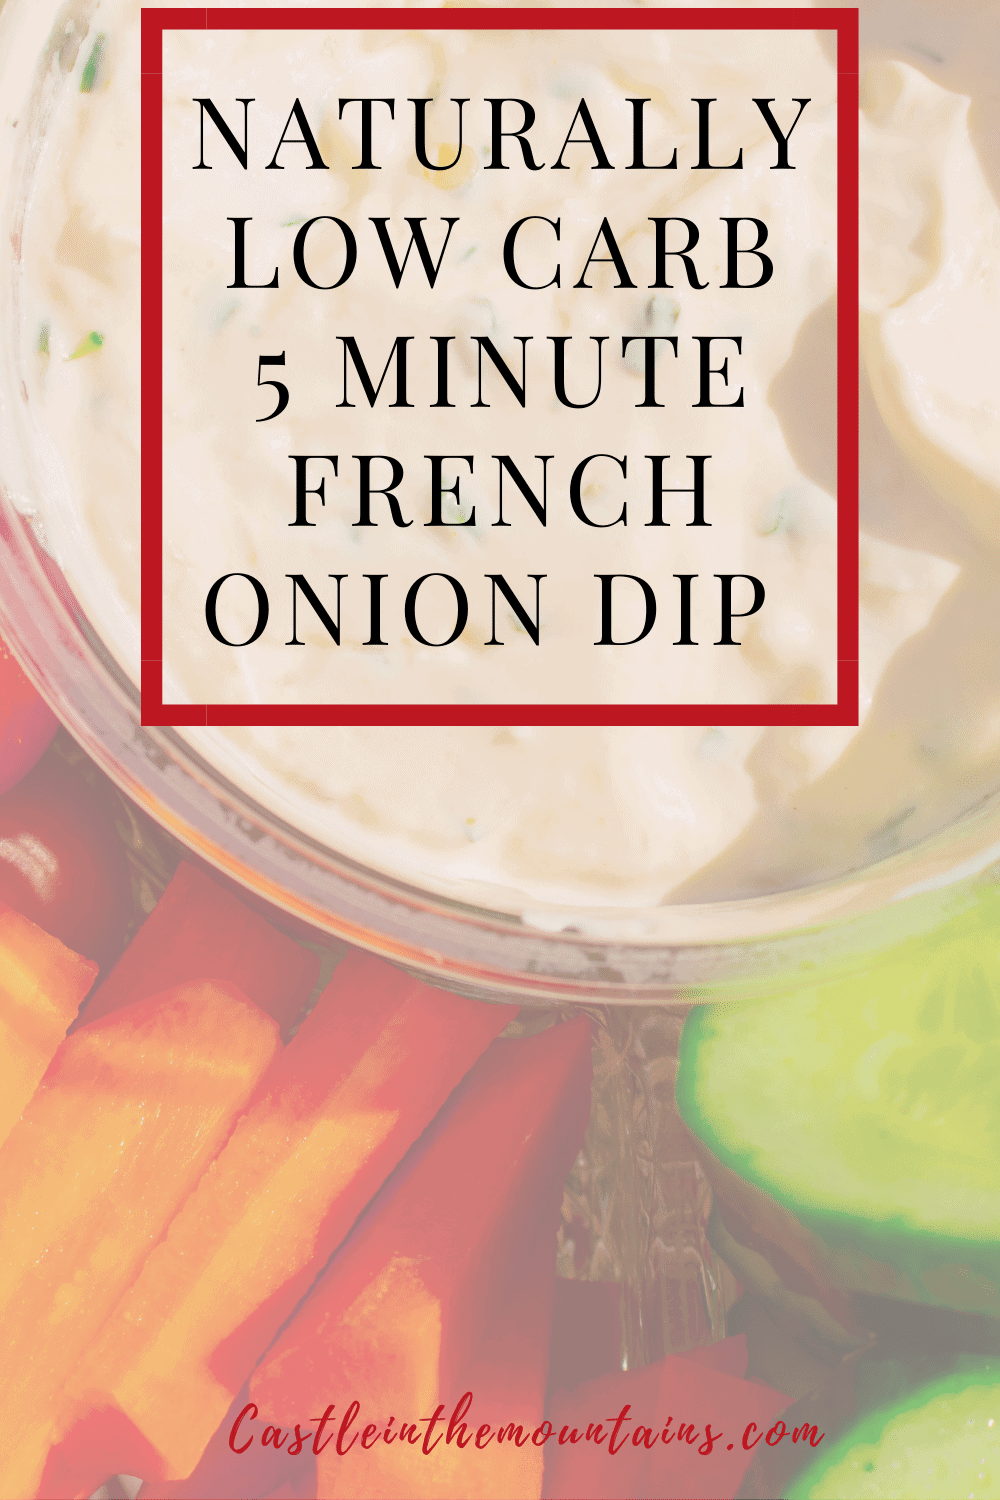 French Onion Dip - How to make Classic Onion Party Dip